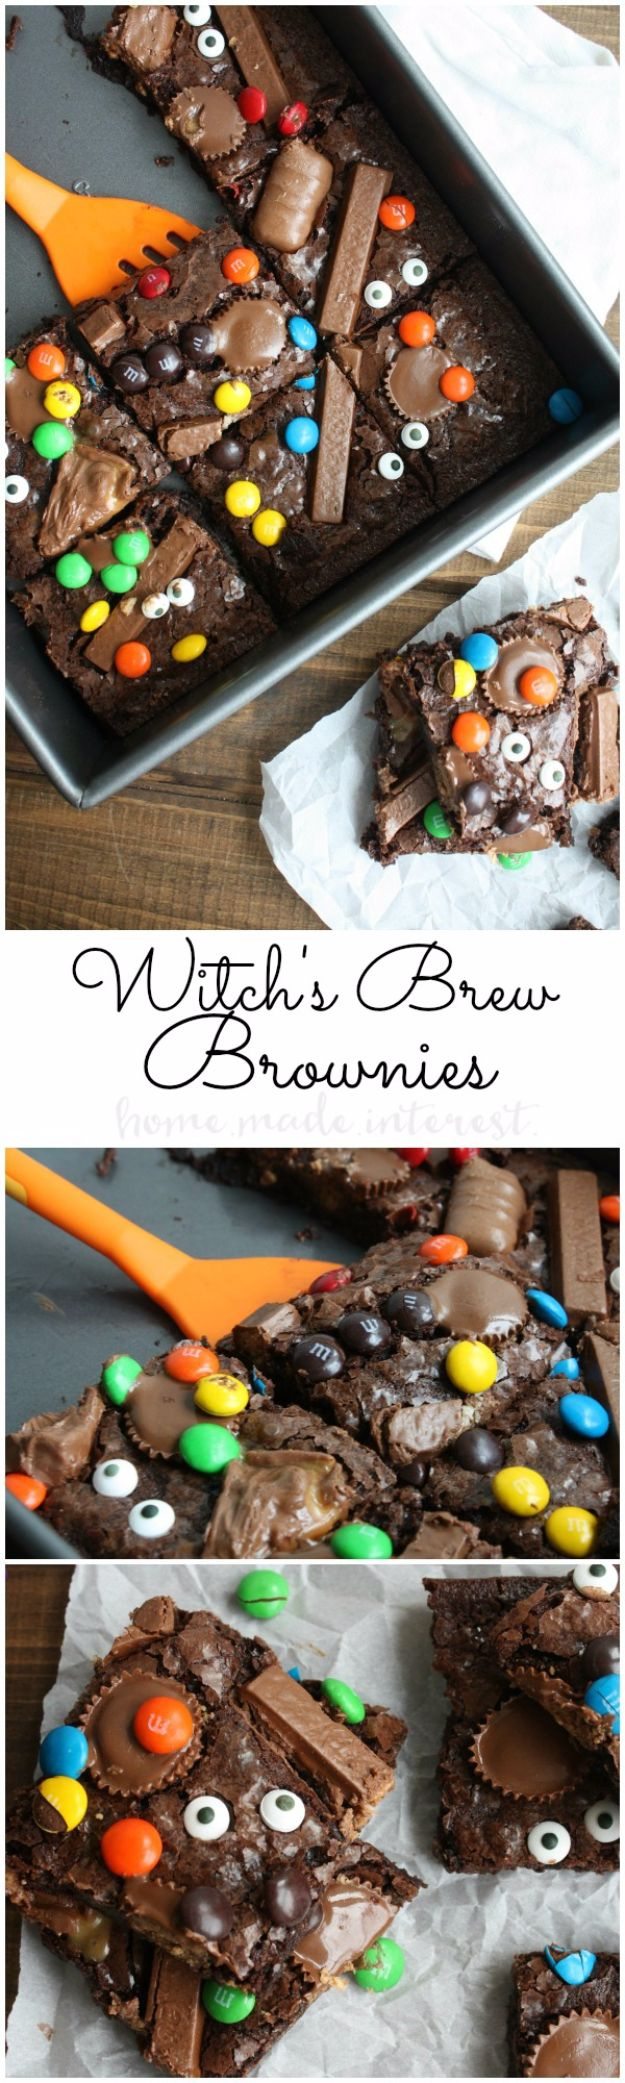 Best Halloween Party Snacks - Witch's Brew Brownies - Healthy Ideas for Kids for School, Teens and Adults - Easy and Quick Recipes and Idea for Dips, Chips, Spooky Cookies and Treats - Appetizers and Finger Foods Made With Vegetables, No Candy, Cheap Food, Scary DIY Party Foods With Step by Step Tutorials http://diyjoy.com/halloween-party-snacks